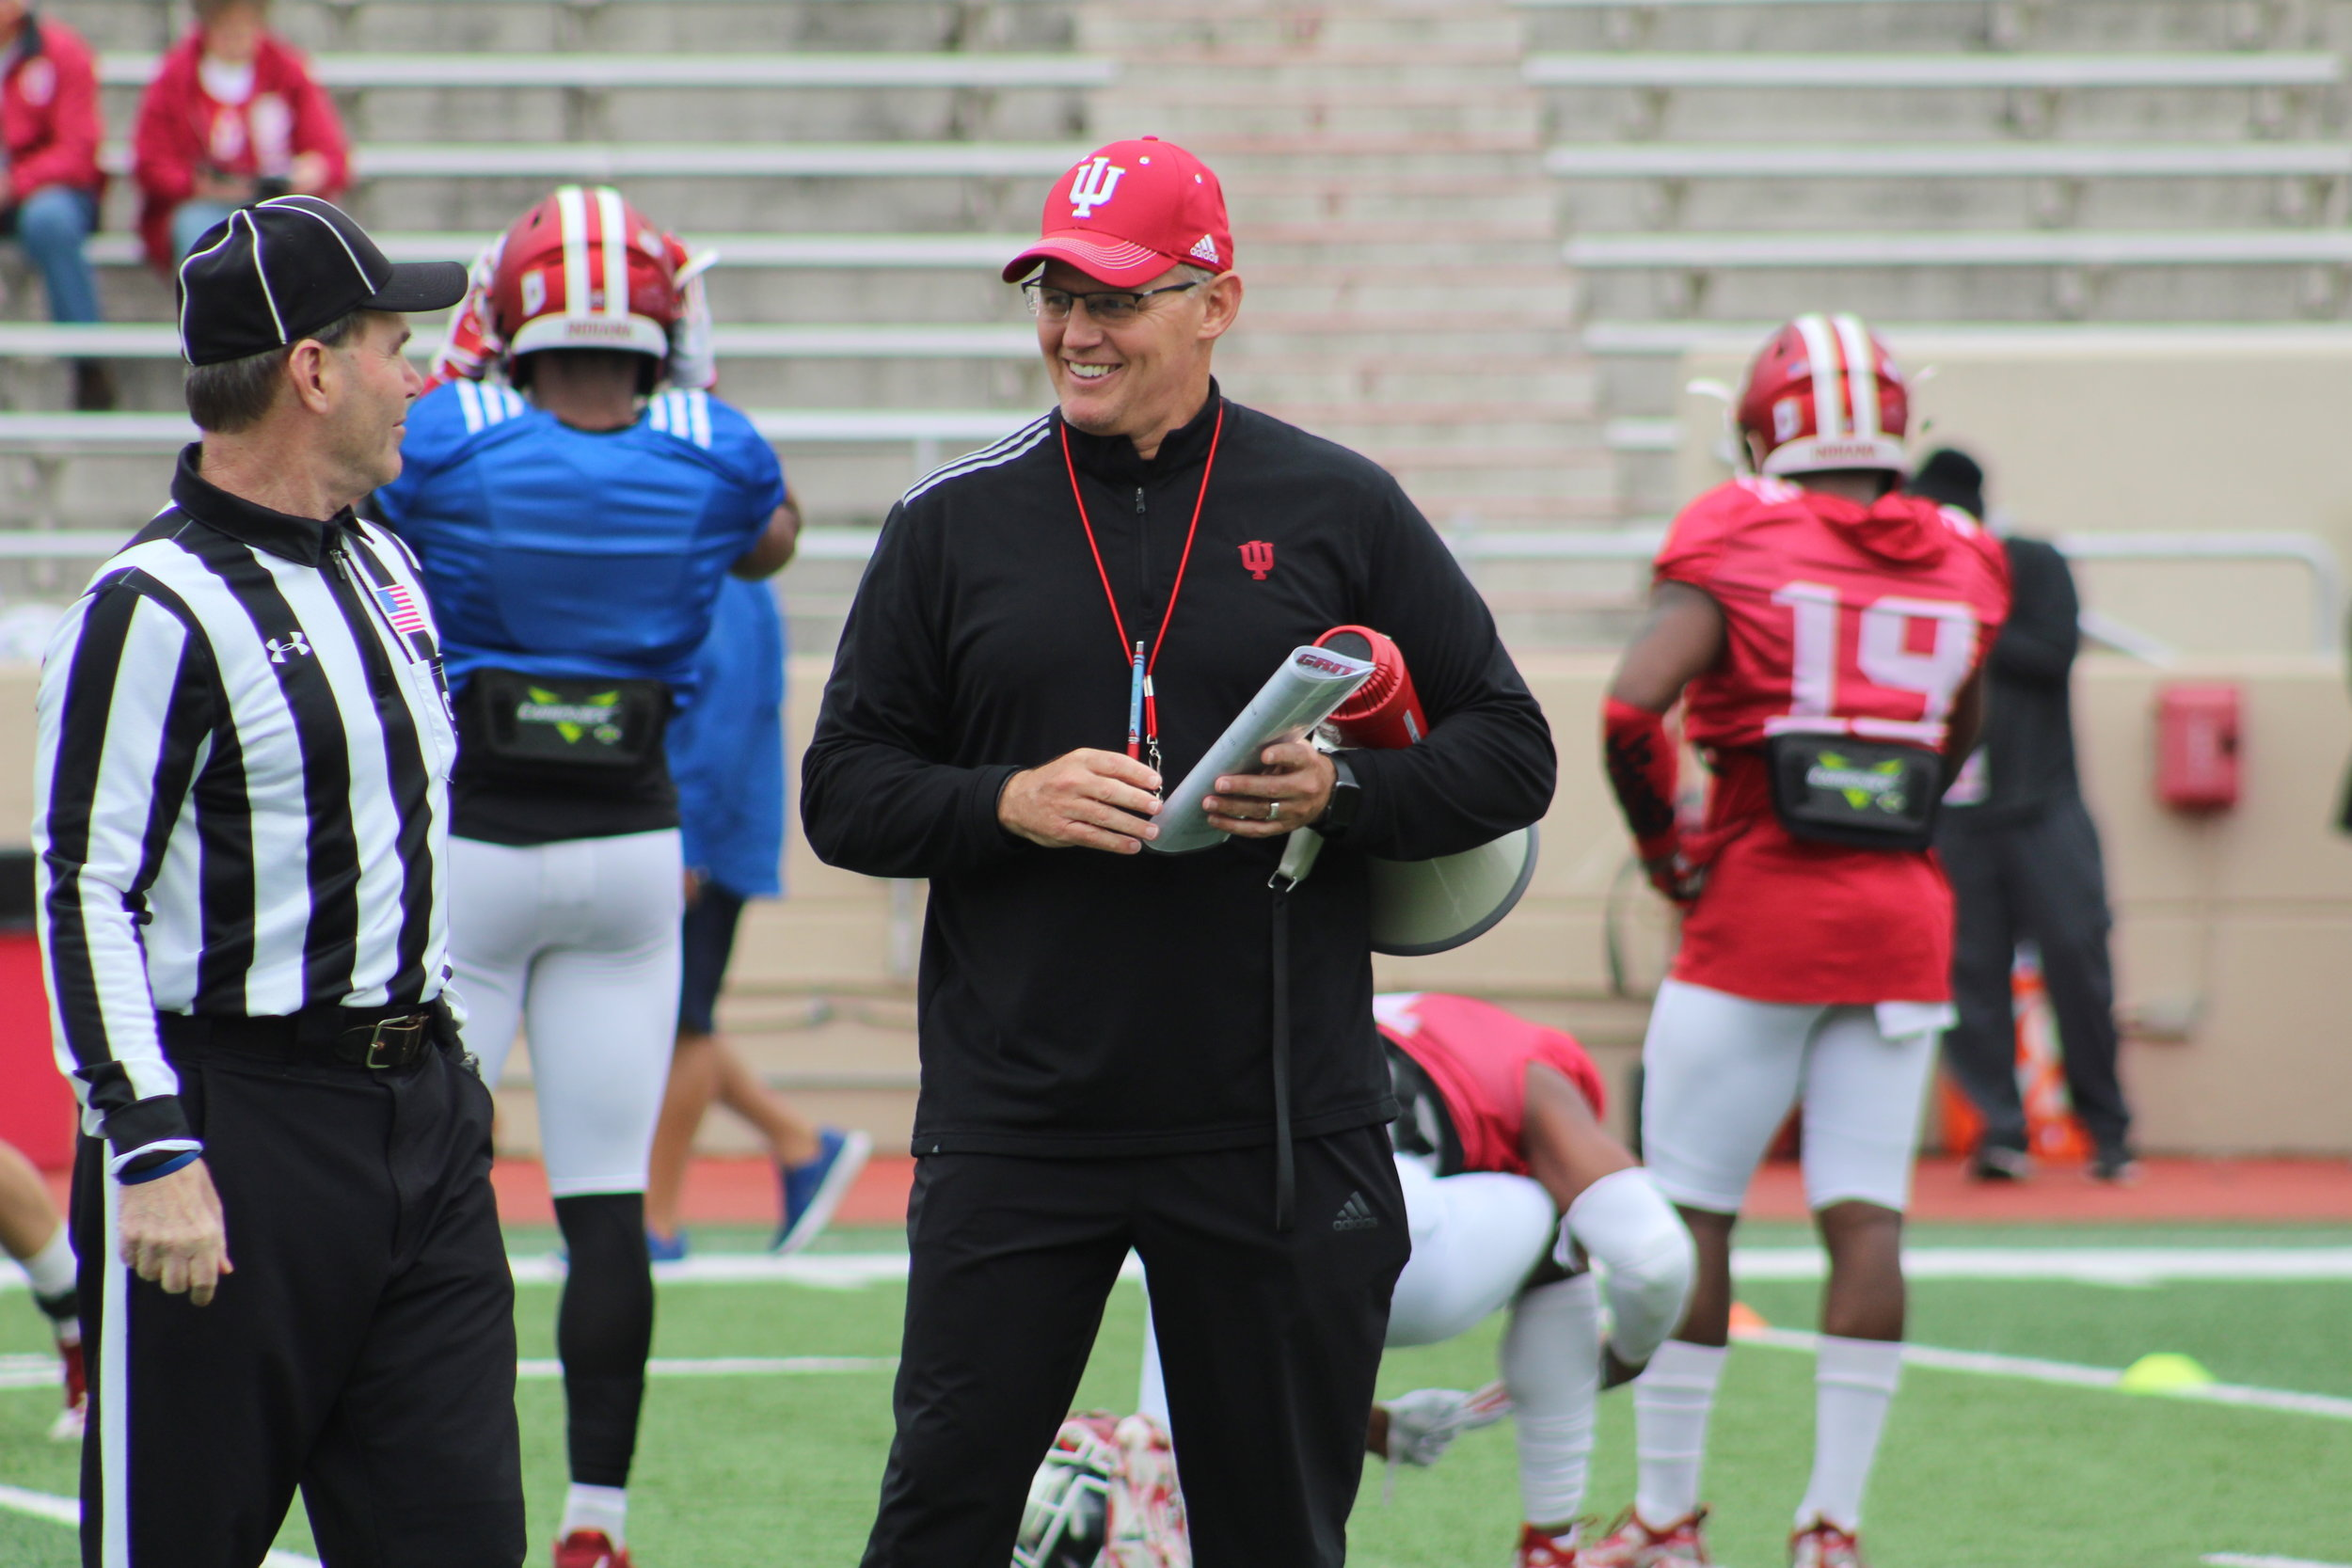 Tom Allen speaks to an official prior to Indiana's 12th spring practice  Image: Hoosier Huddle